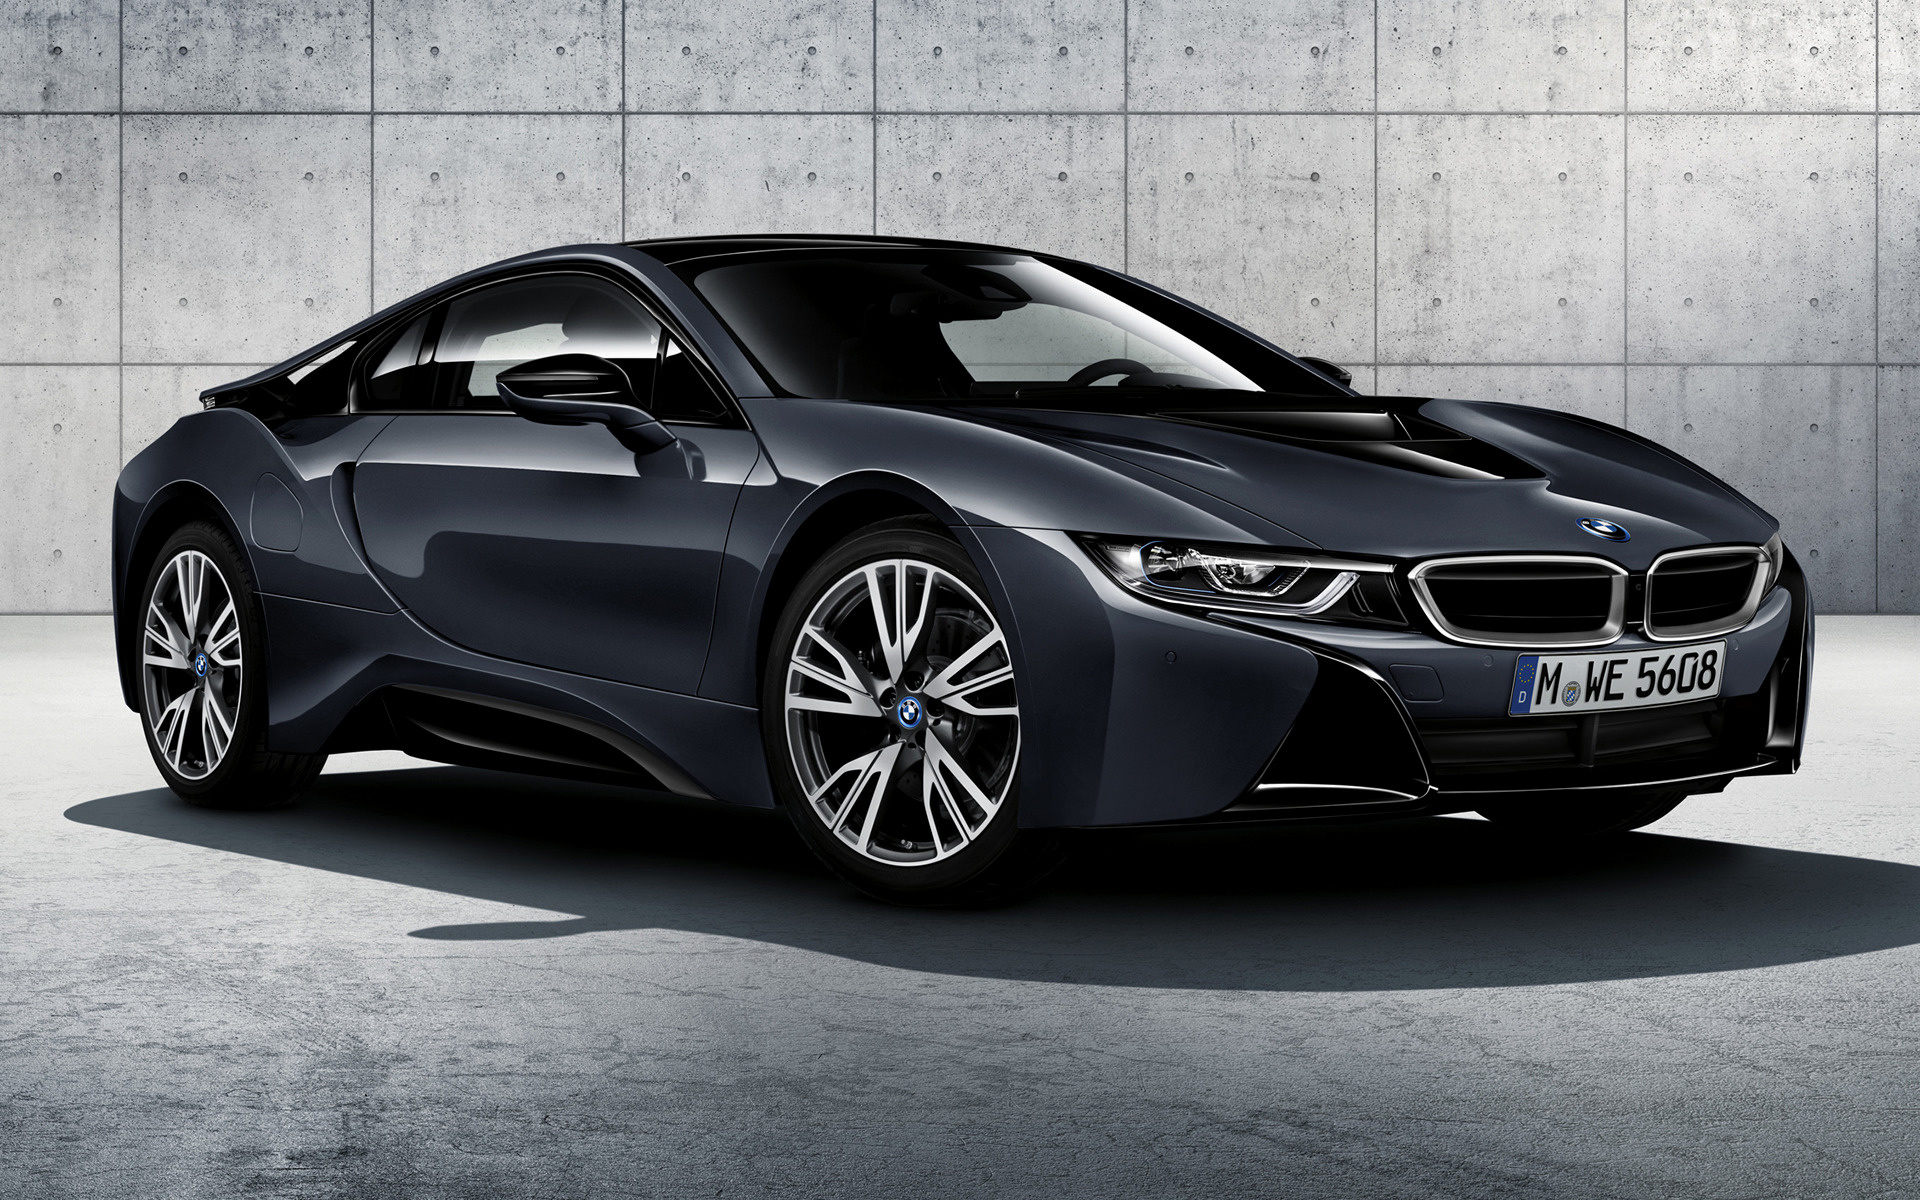 2016 Bmw I8 Protonic Dark Silver Edition Wallpapers And